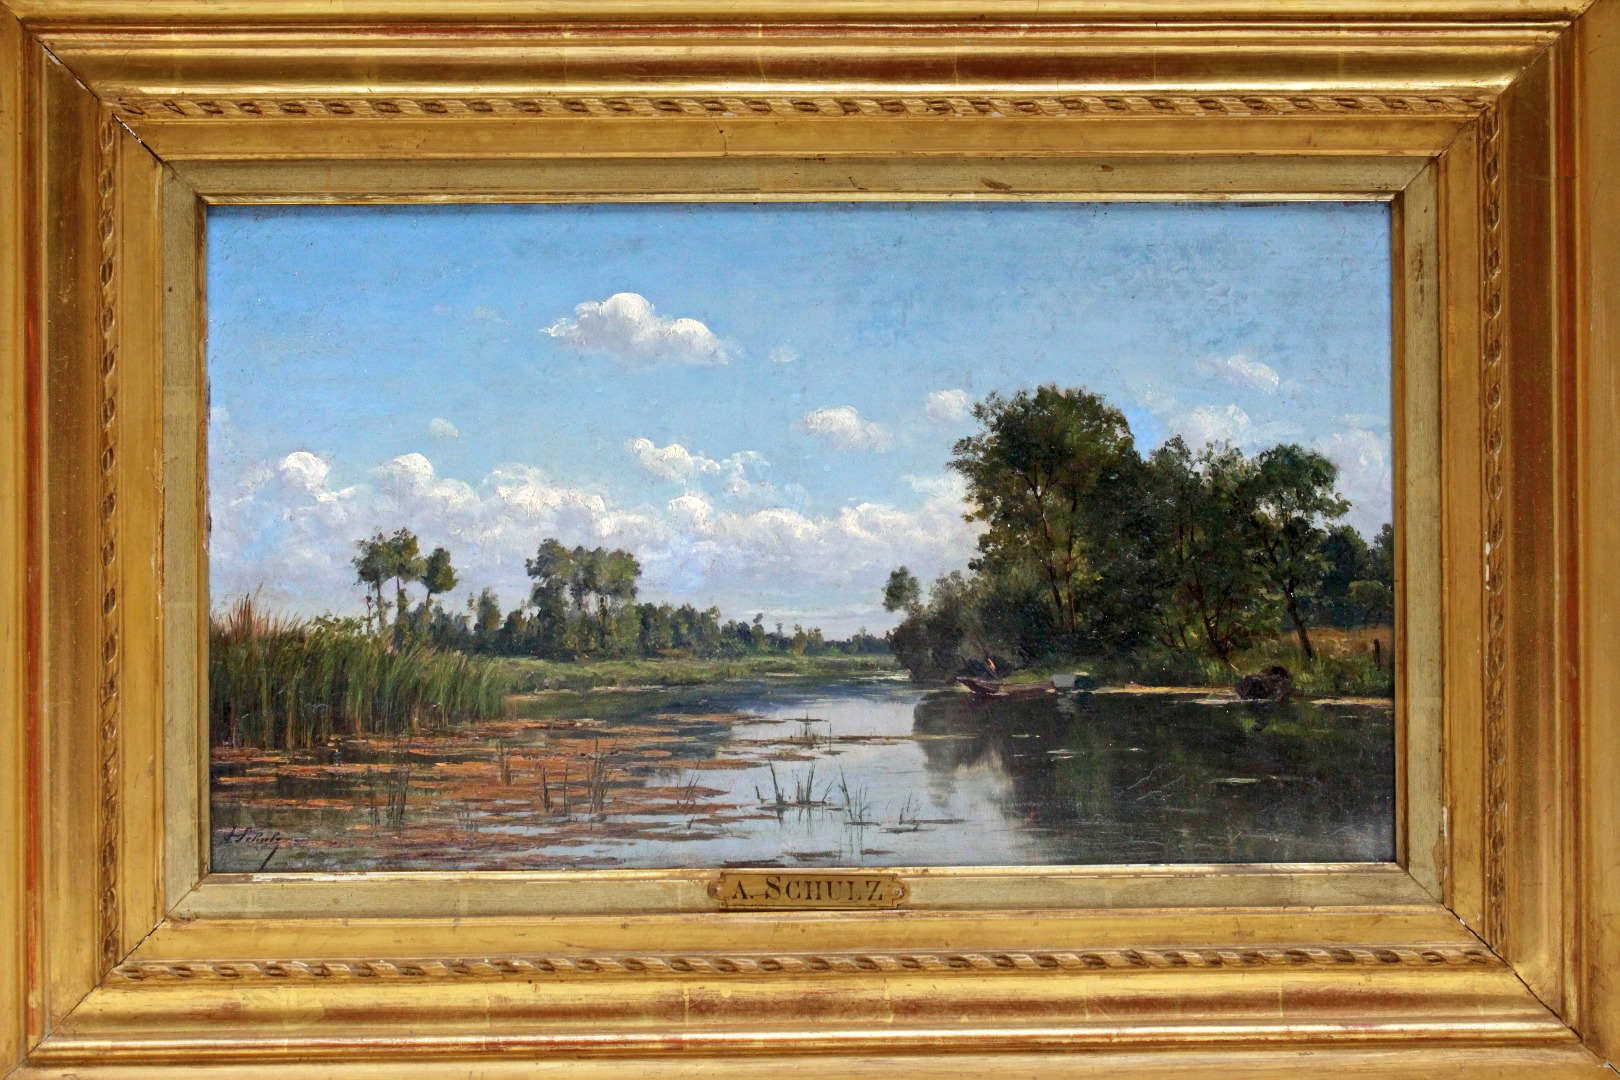 OIL ON PANEL BY Adrien Schulz (1851-1931)